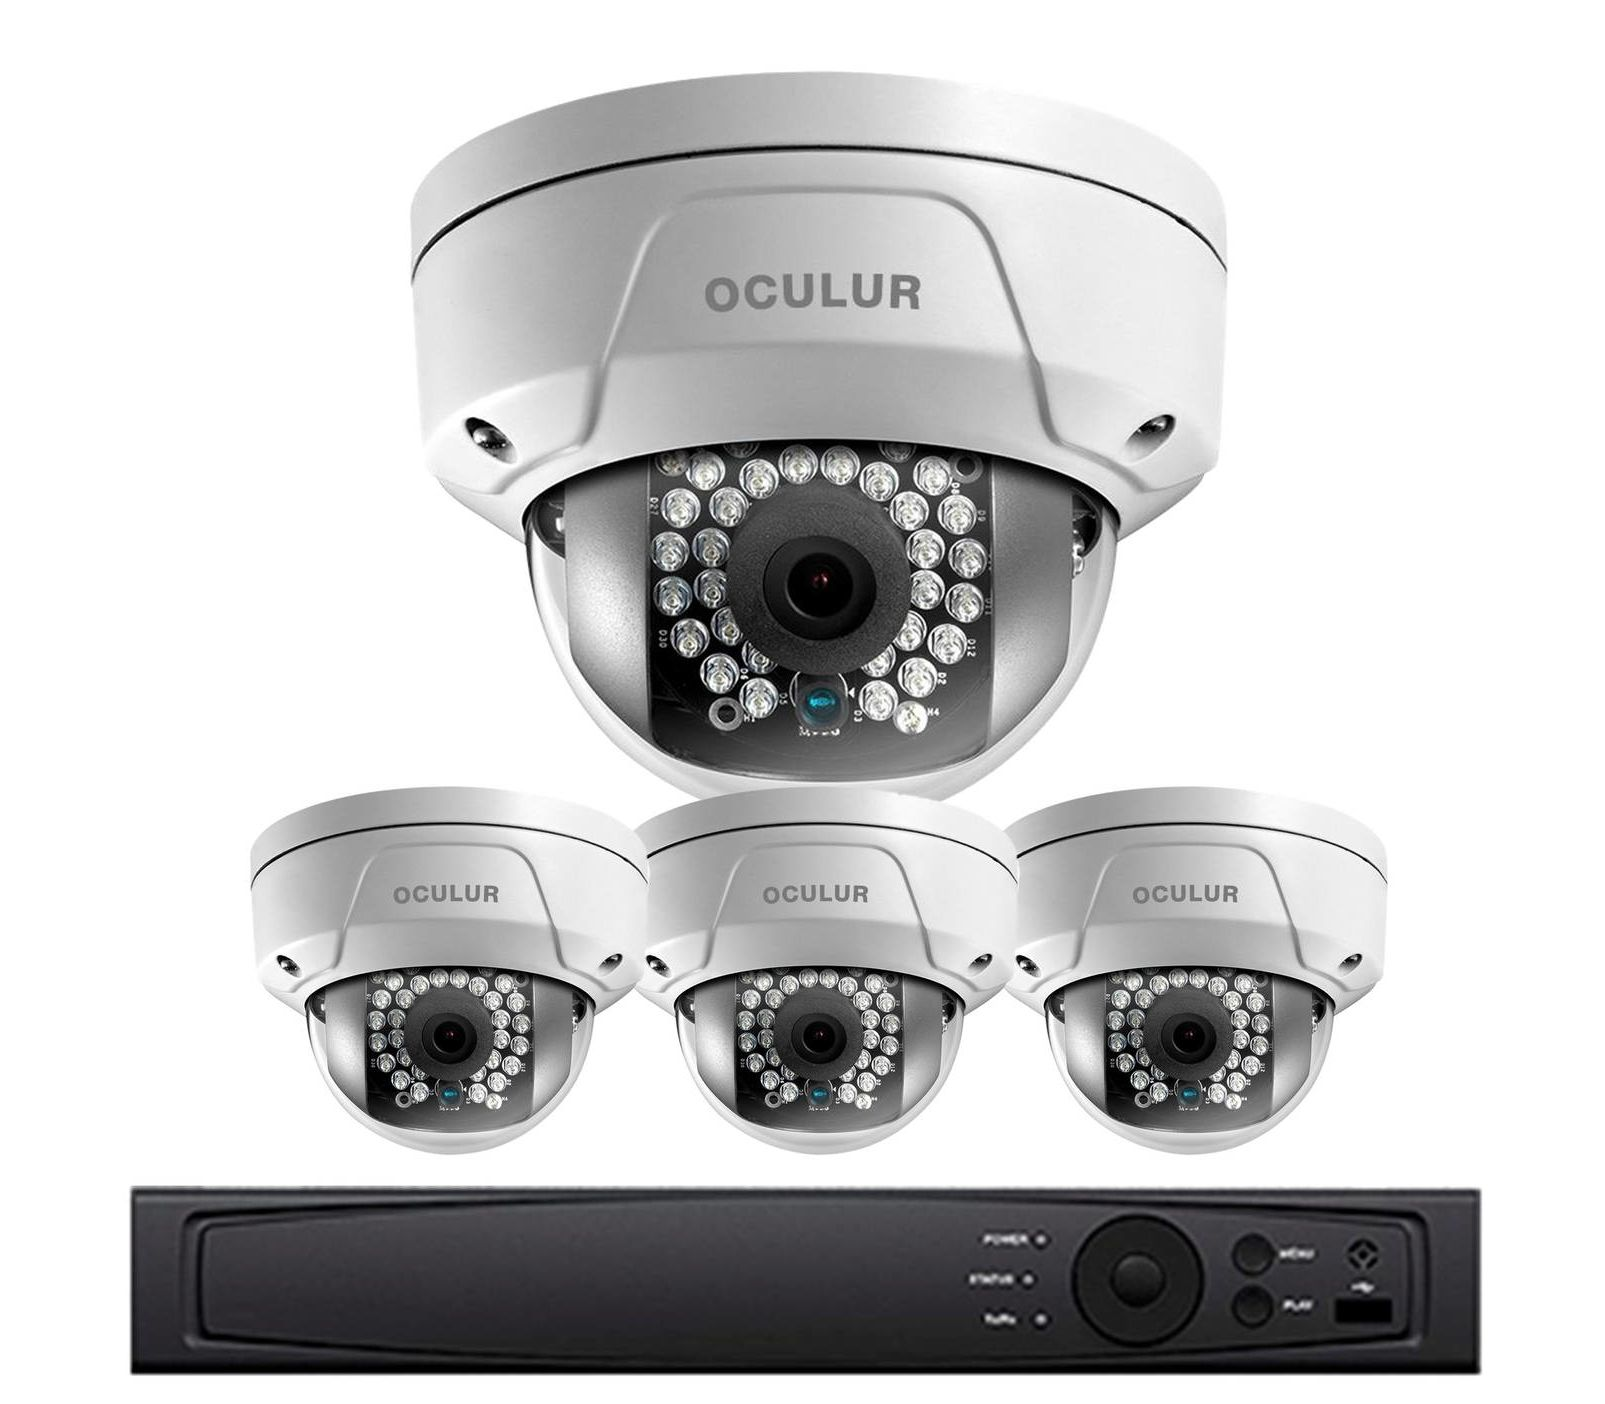 Retail Security Camera System - 2K Video Resolution, 4 x Vandal ...